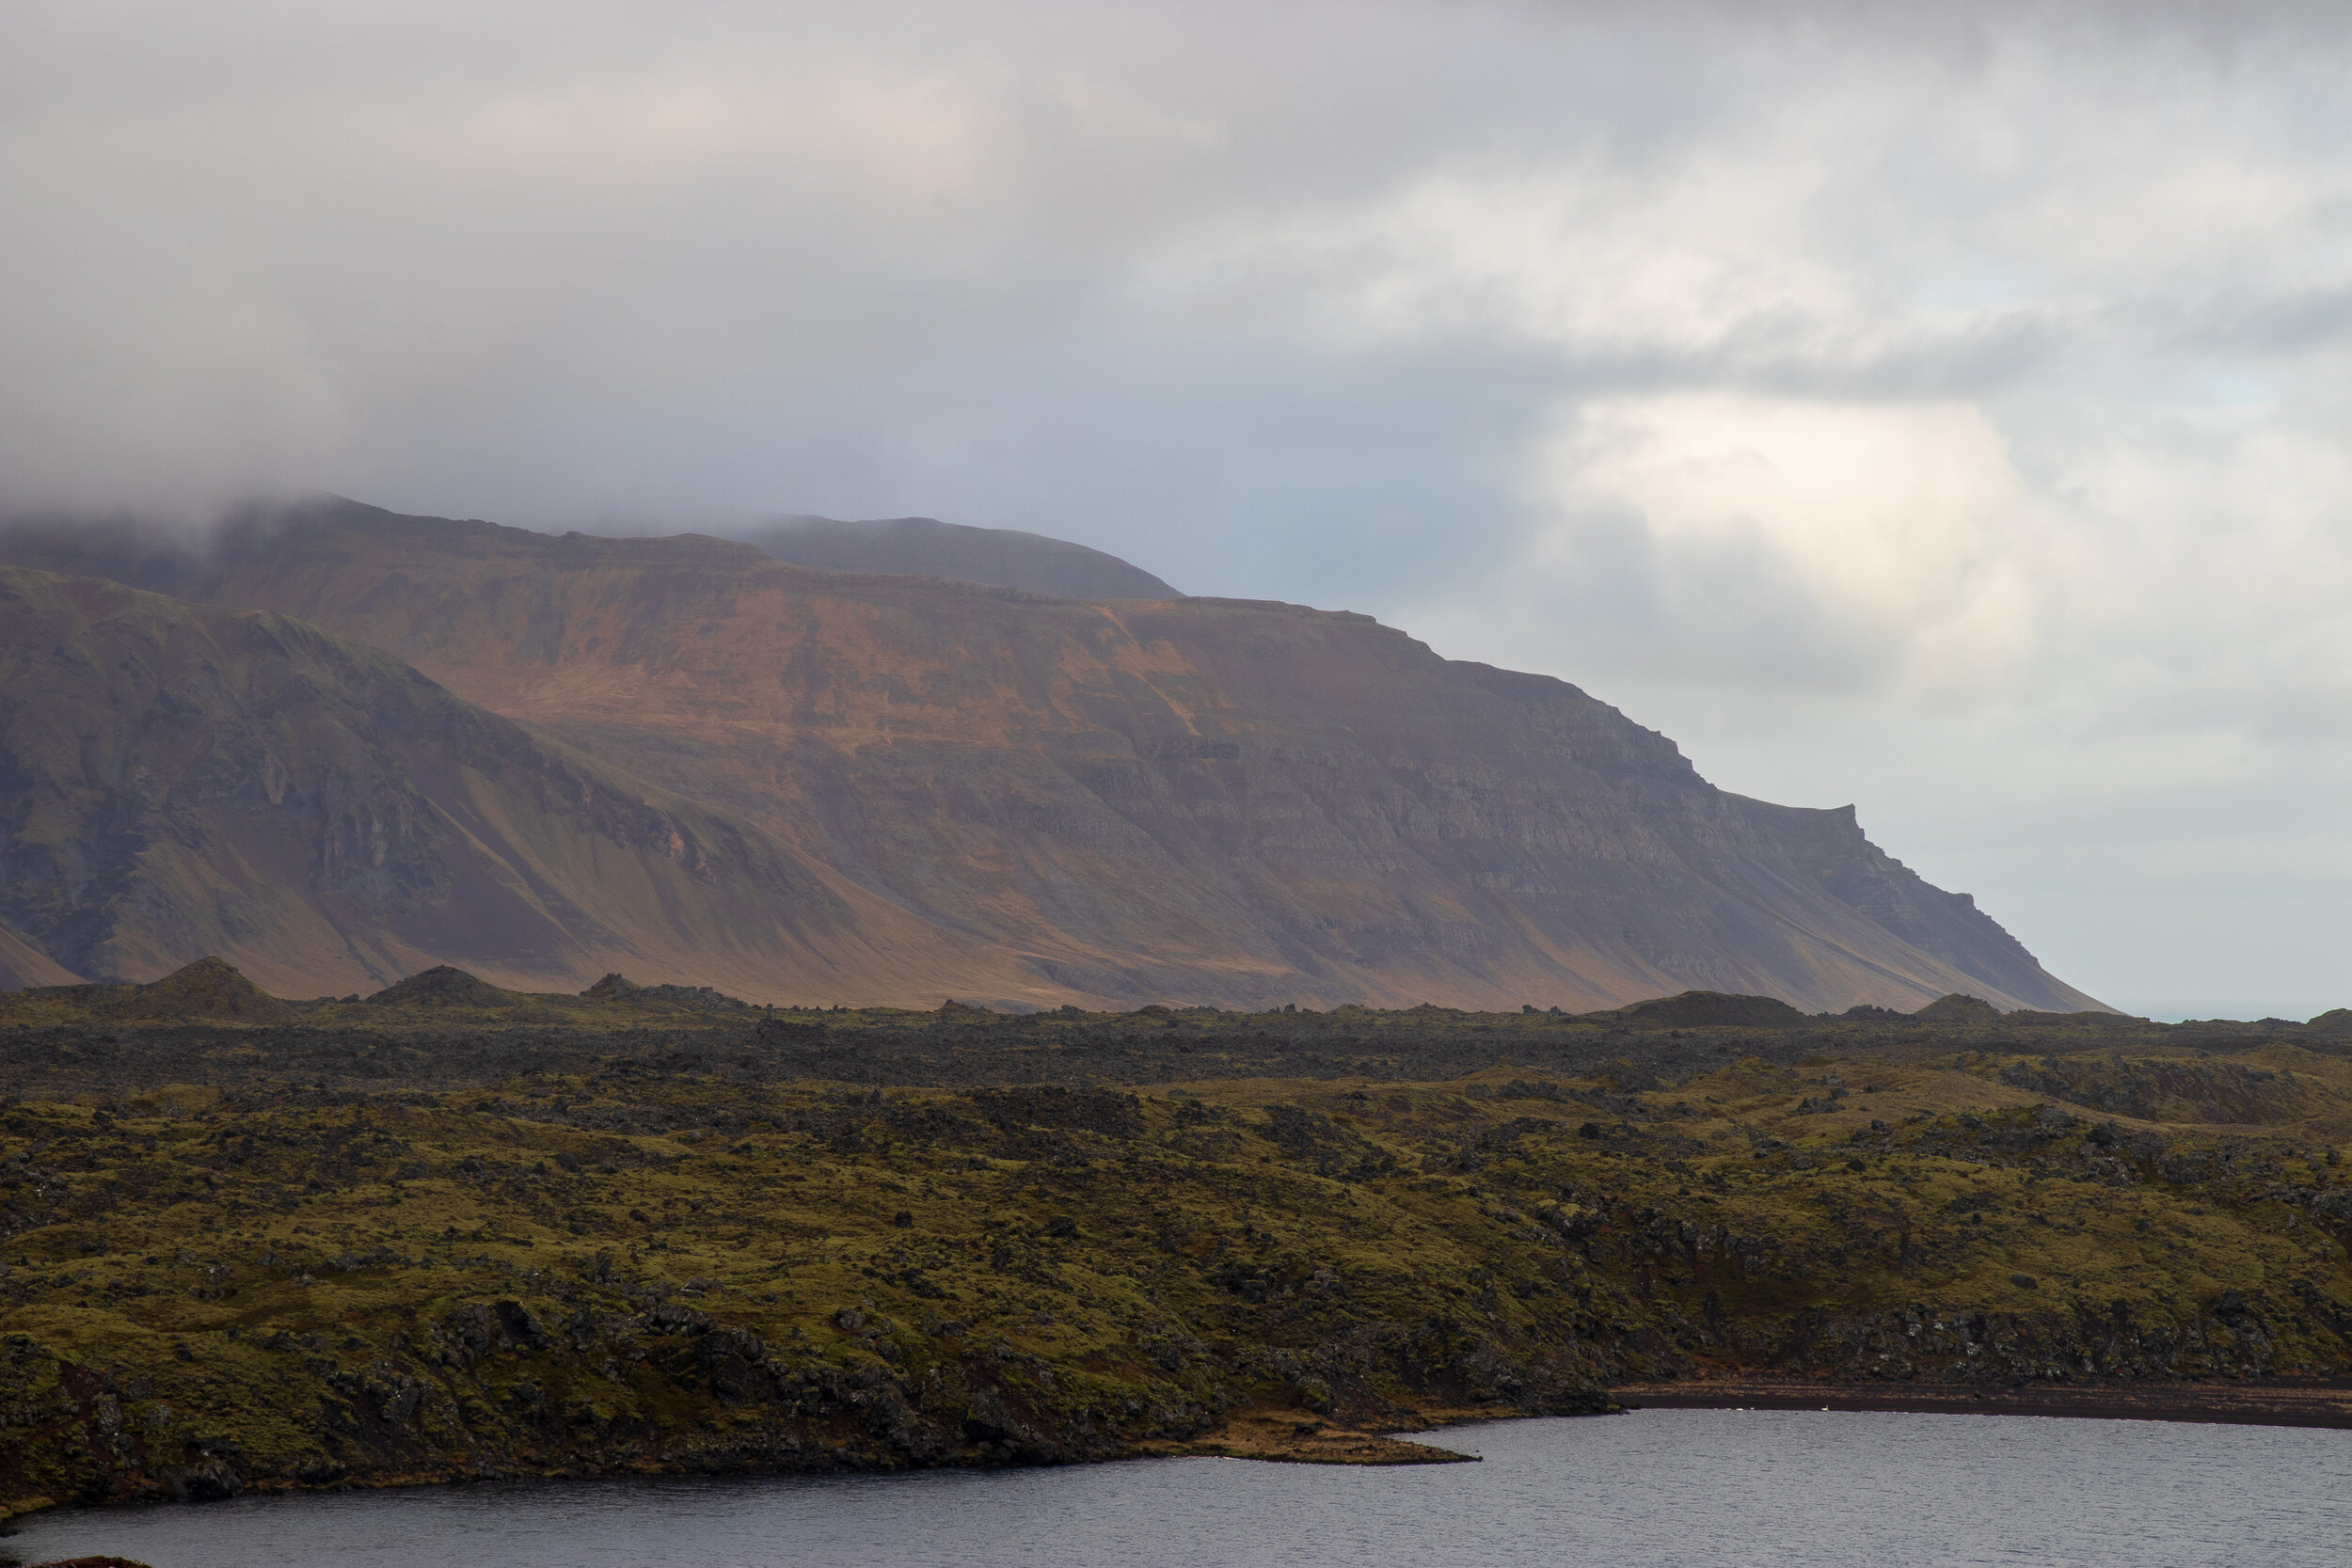 View from the pass on Road 56 on the way to Stykkishólmur.